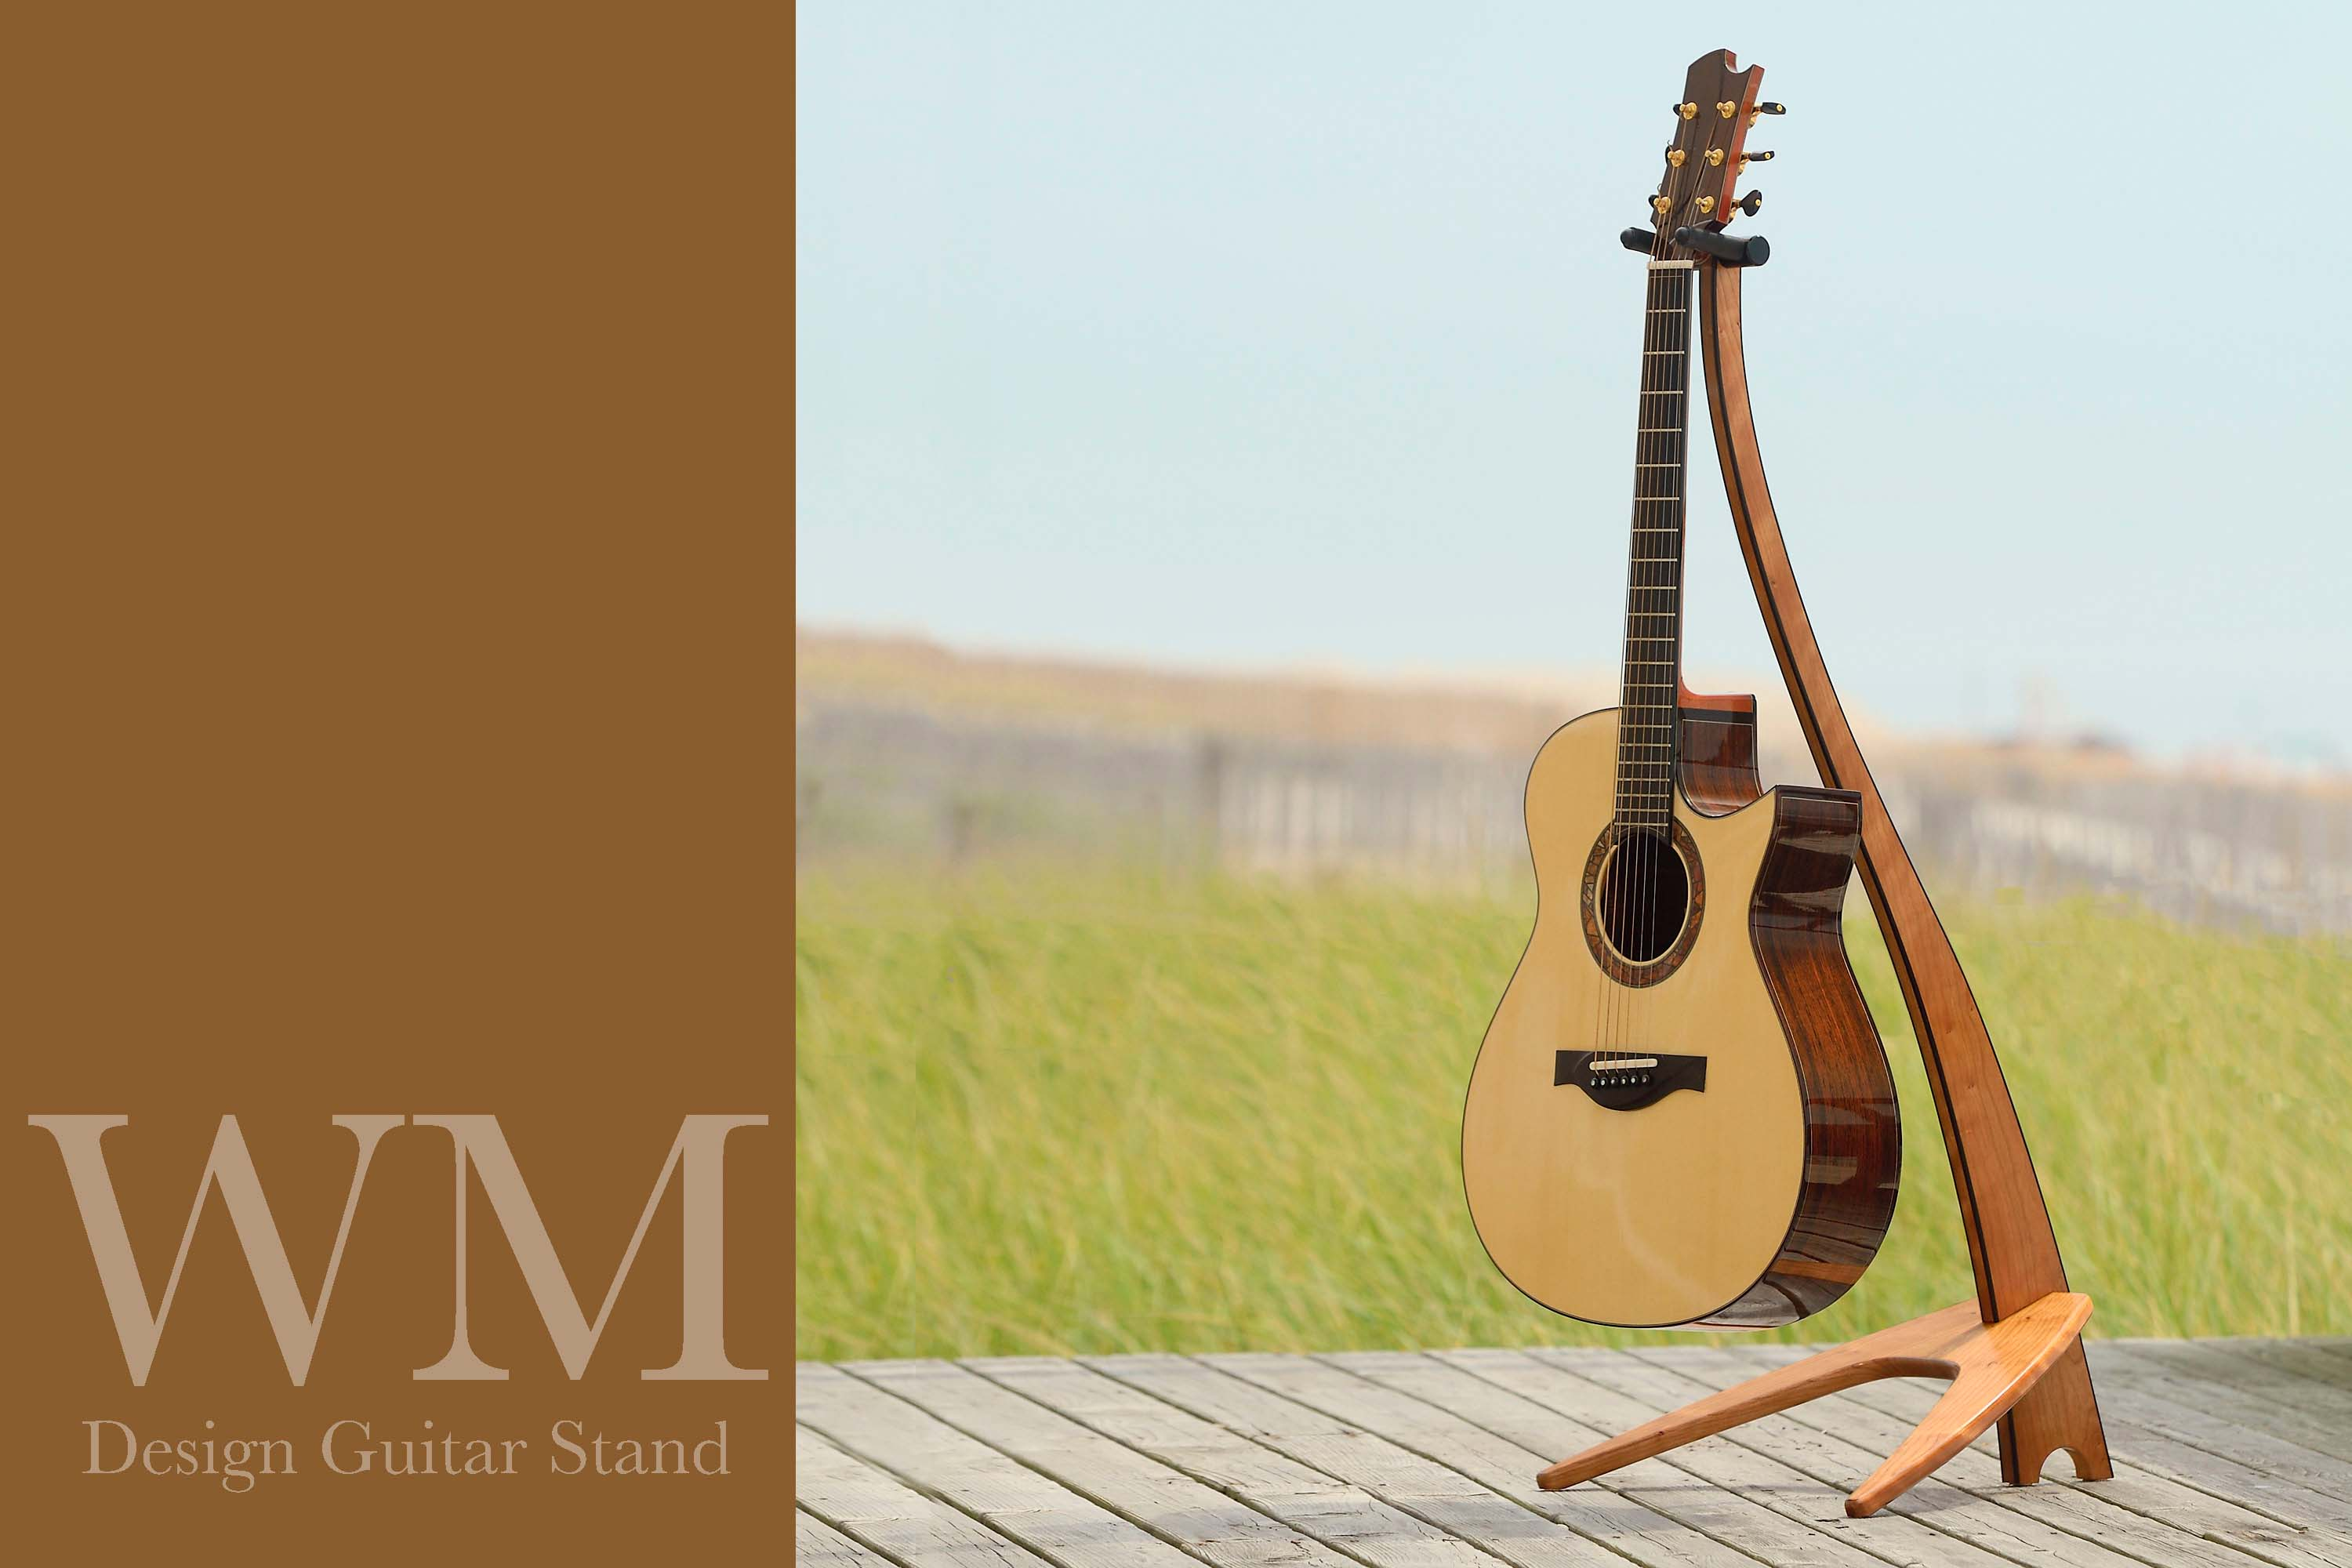 WM Guitar Stand in cherry with ebony binding.